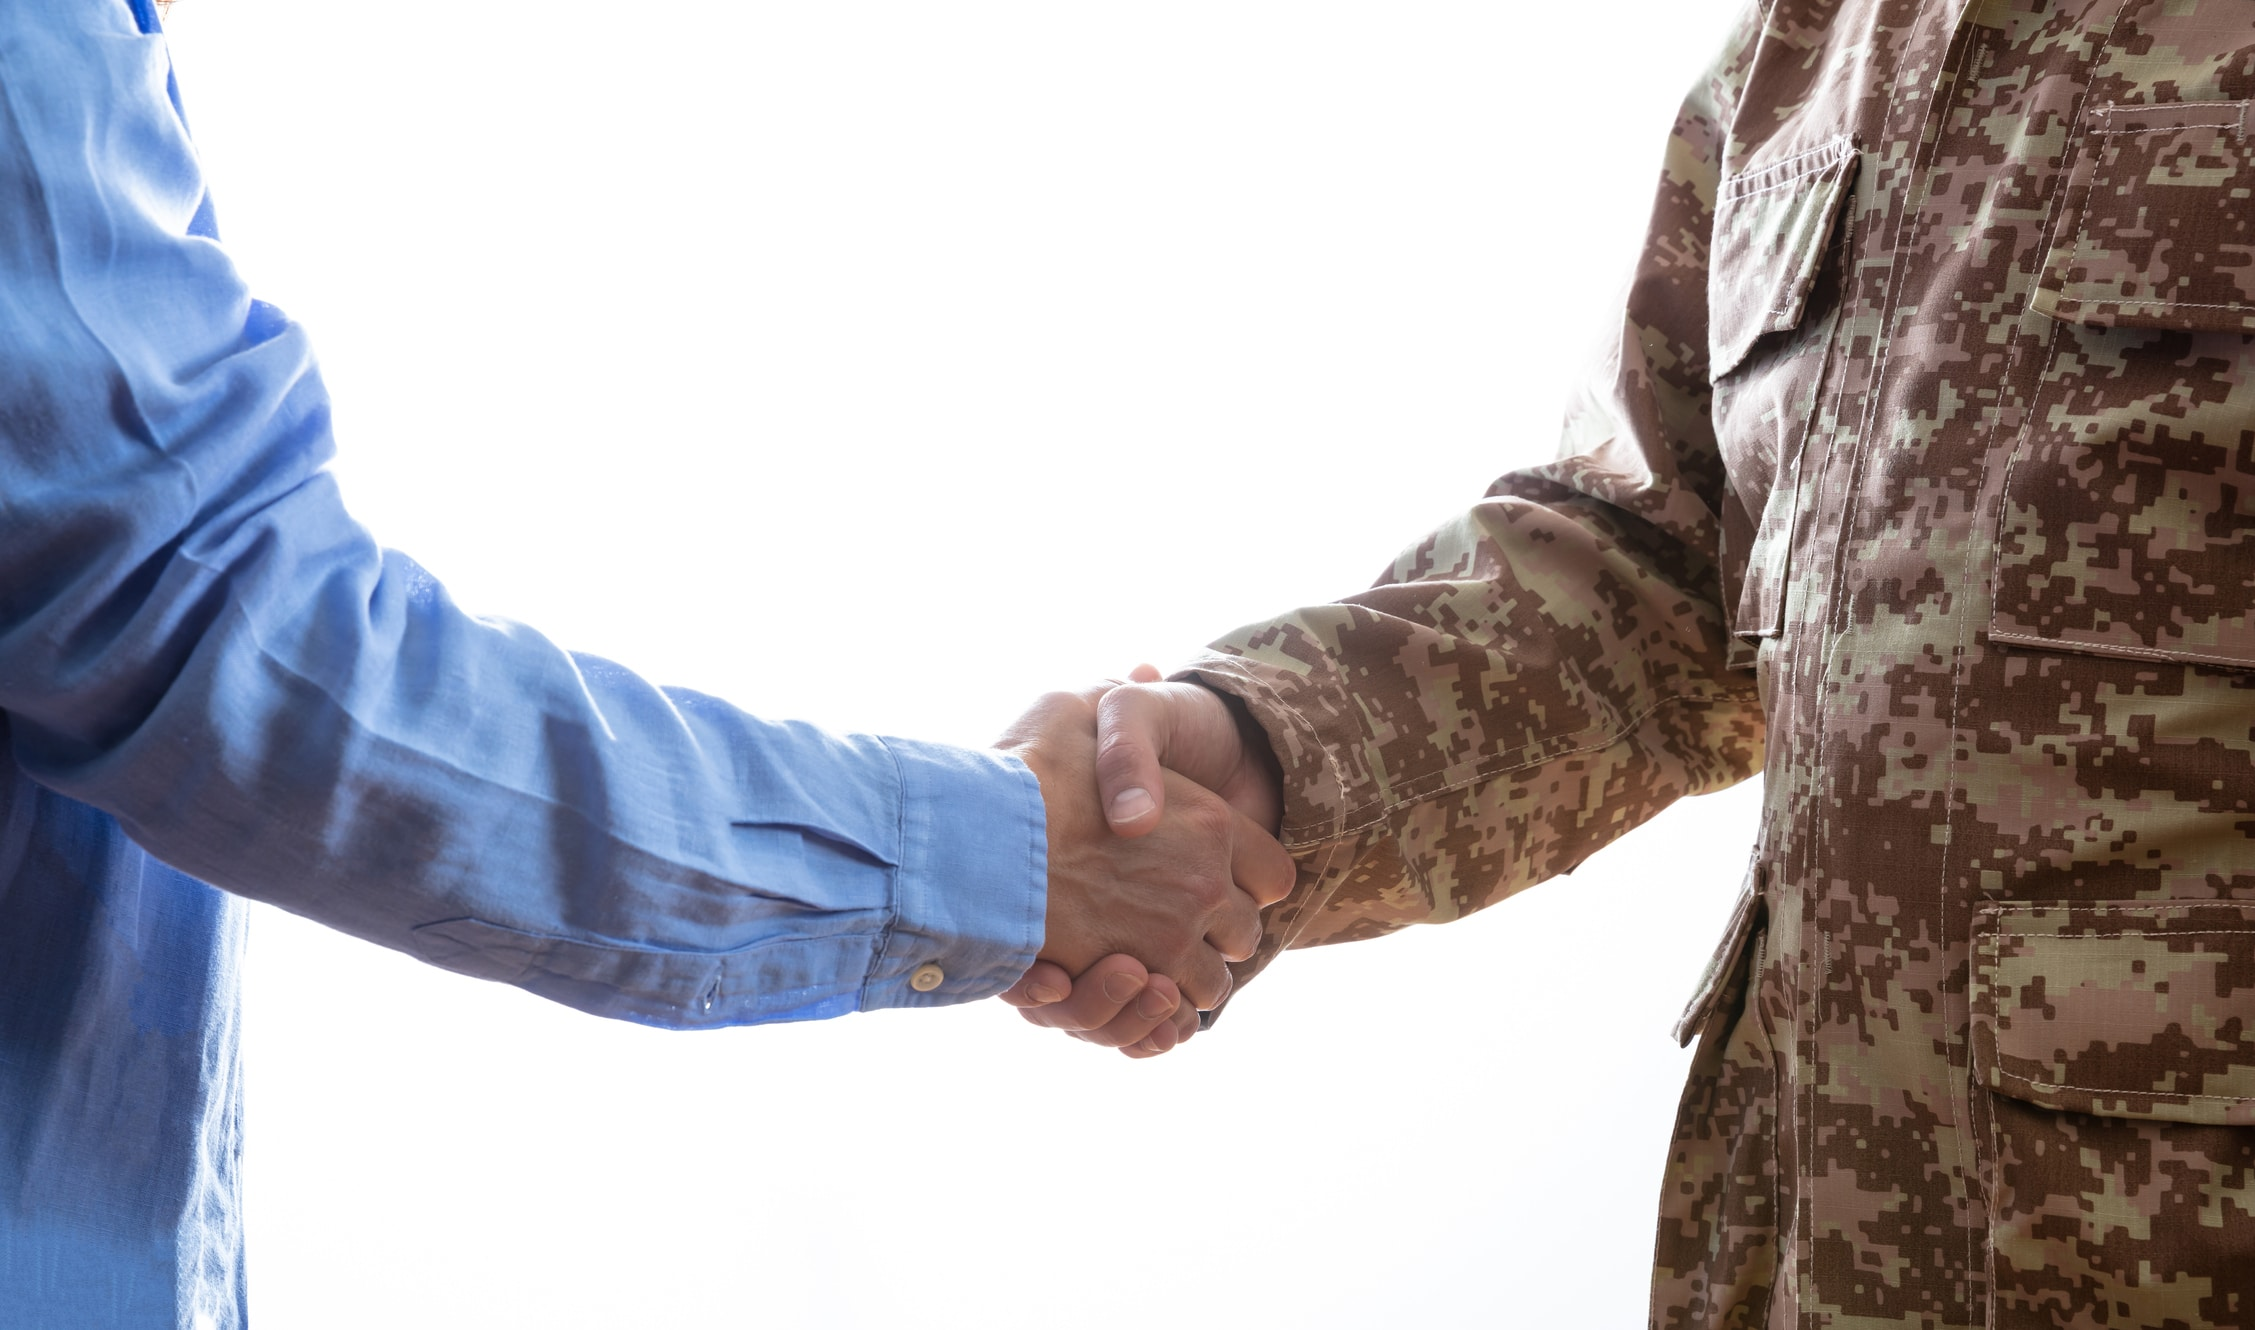 Military person and civilian shaking hands